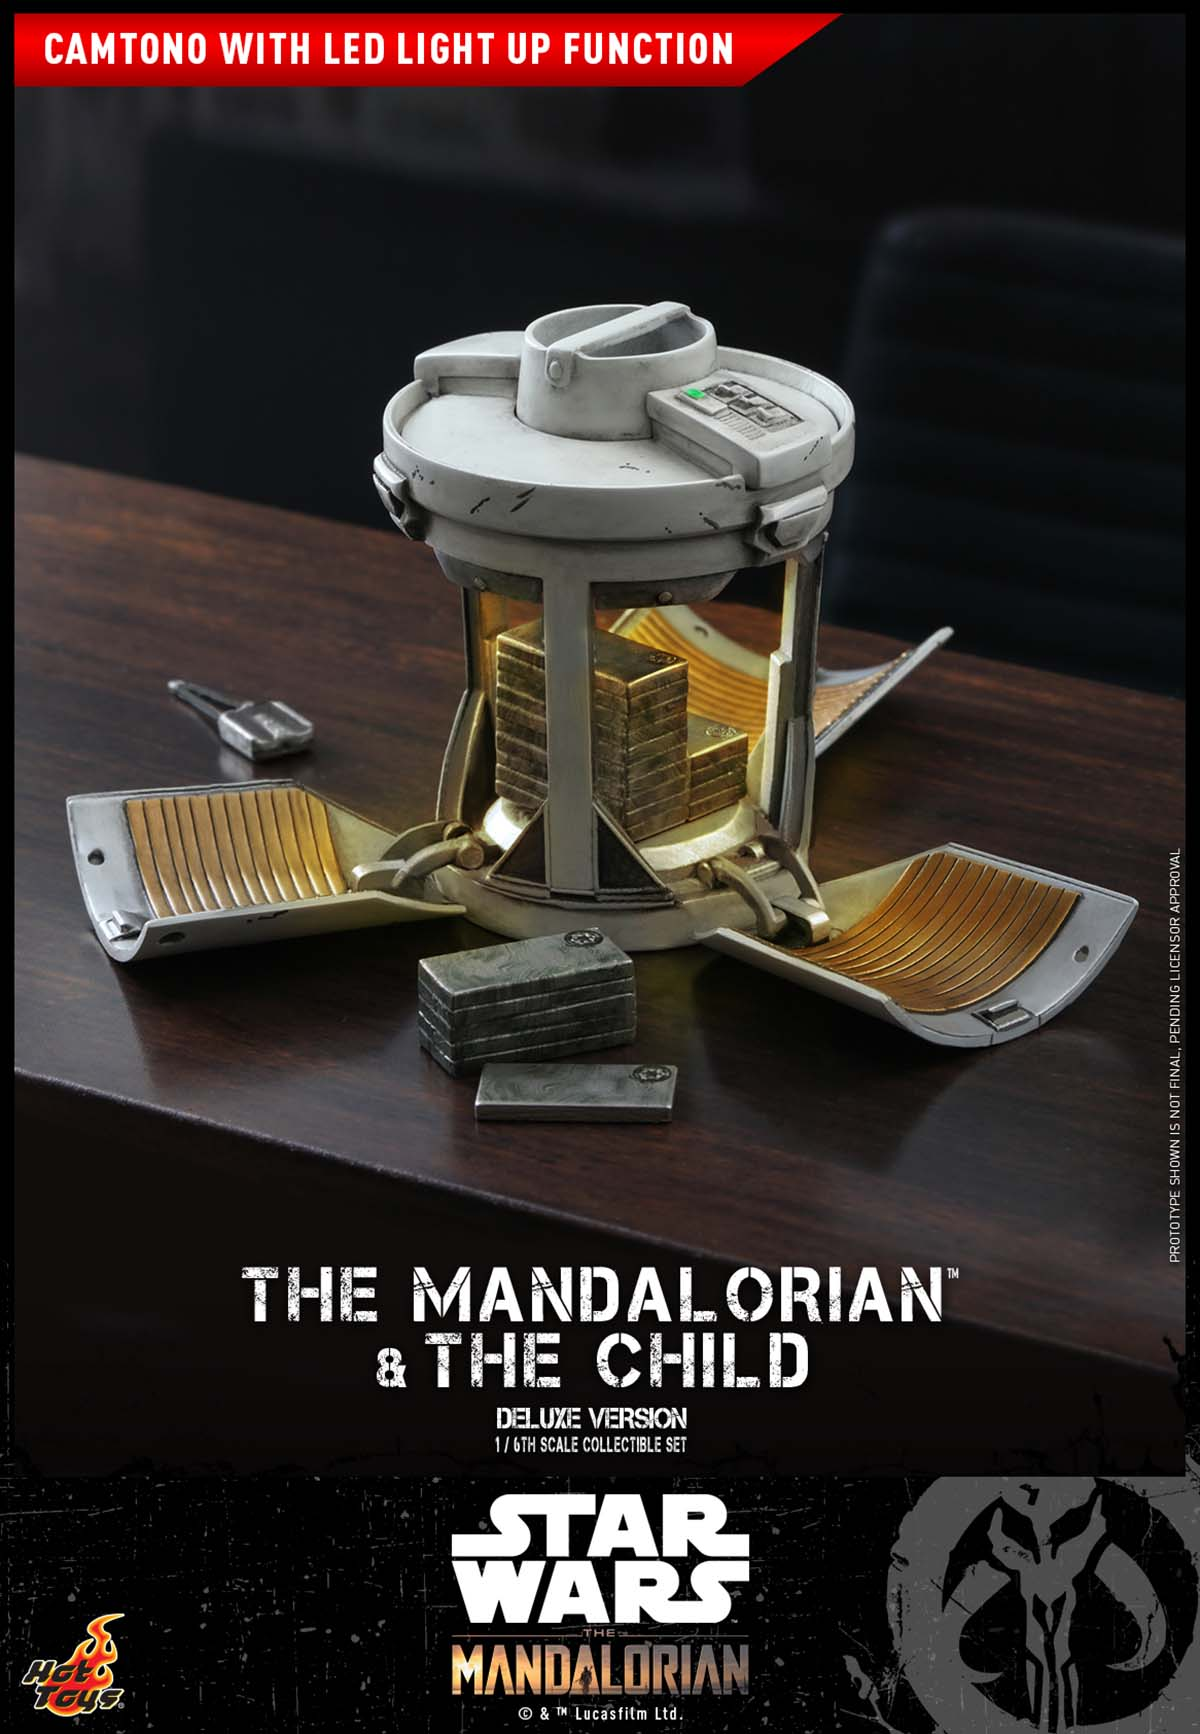 hot-toys-stm-mandalorian-and-child-collectible-set-deluxe_pr22